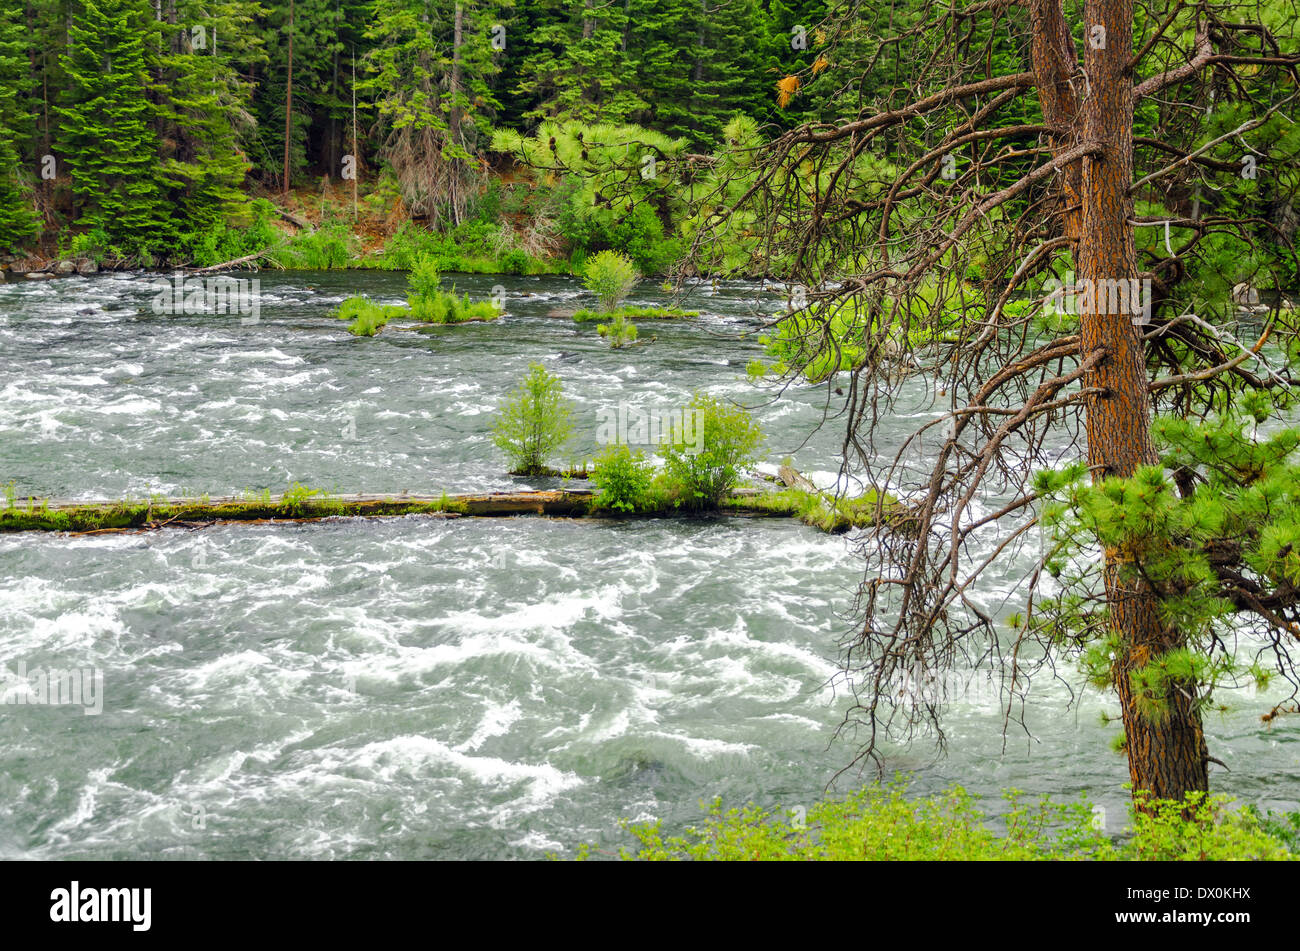 View of the Deschutes River rushing by a forest in Central Oregon - Stock Image